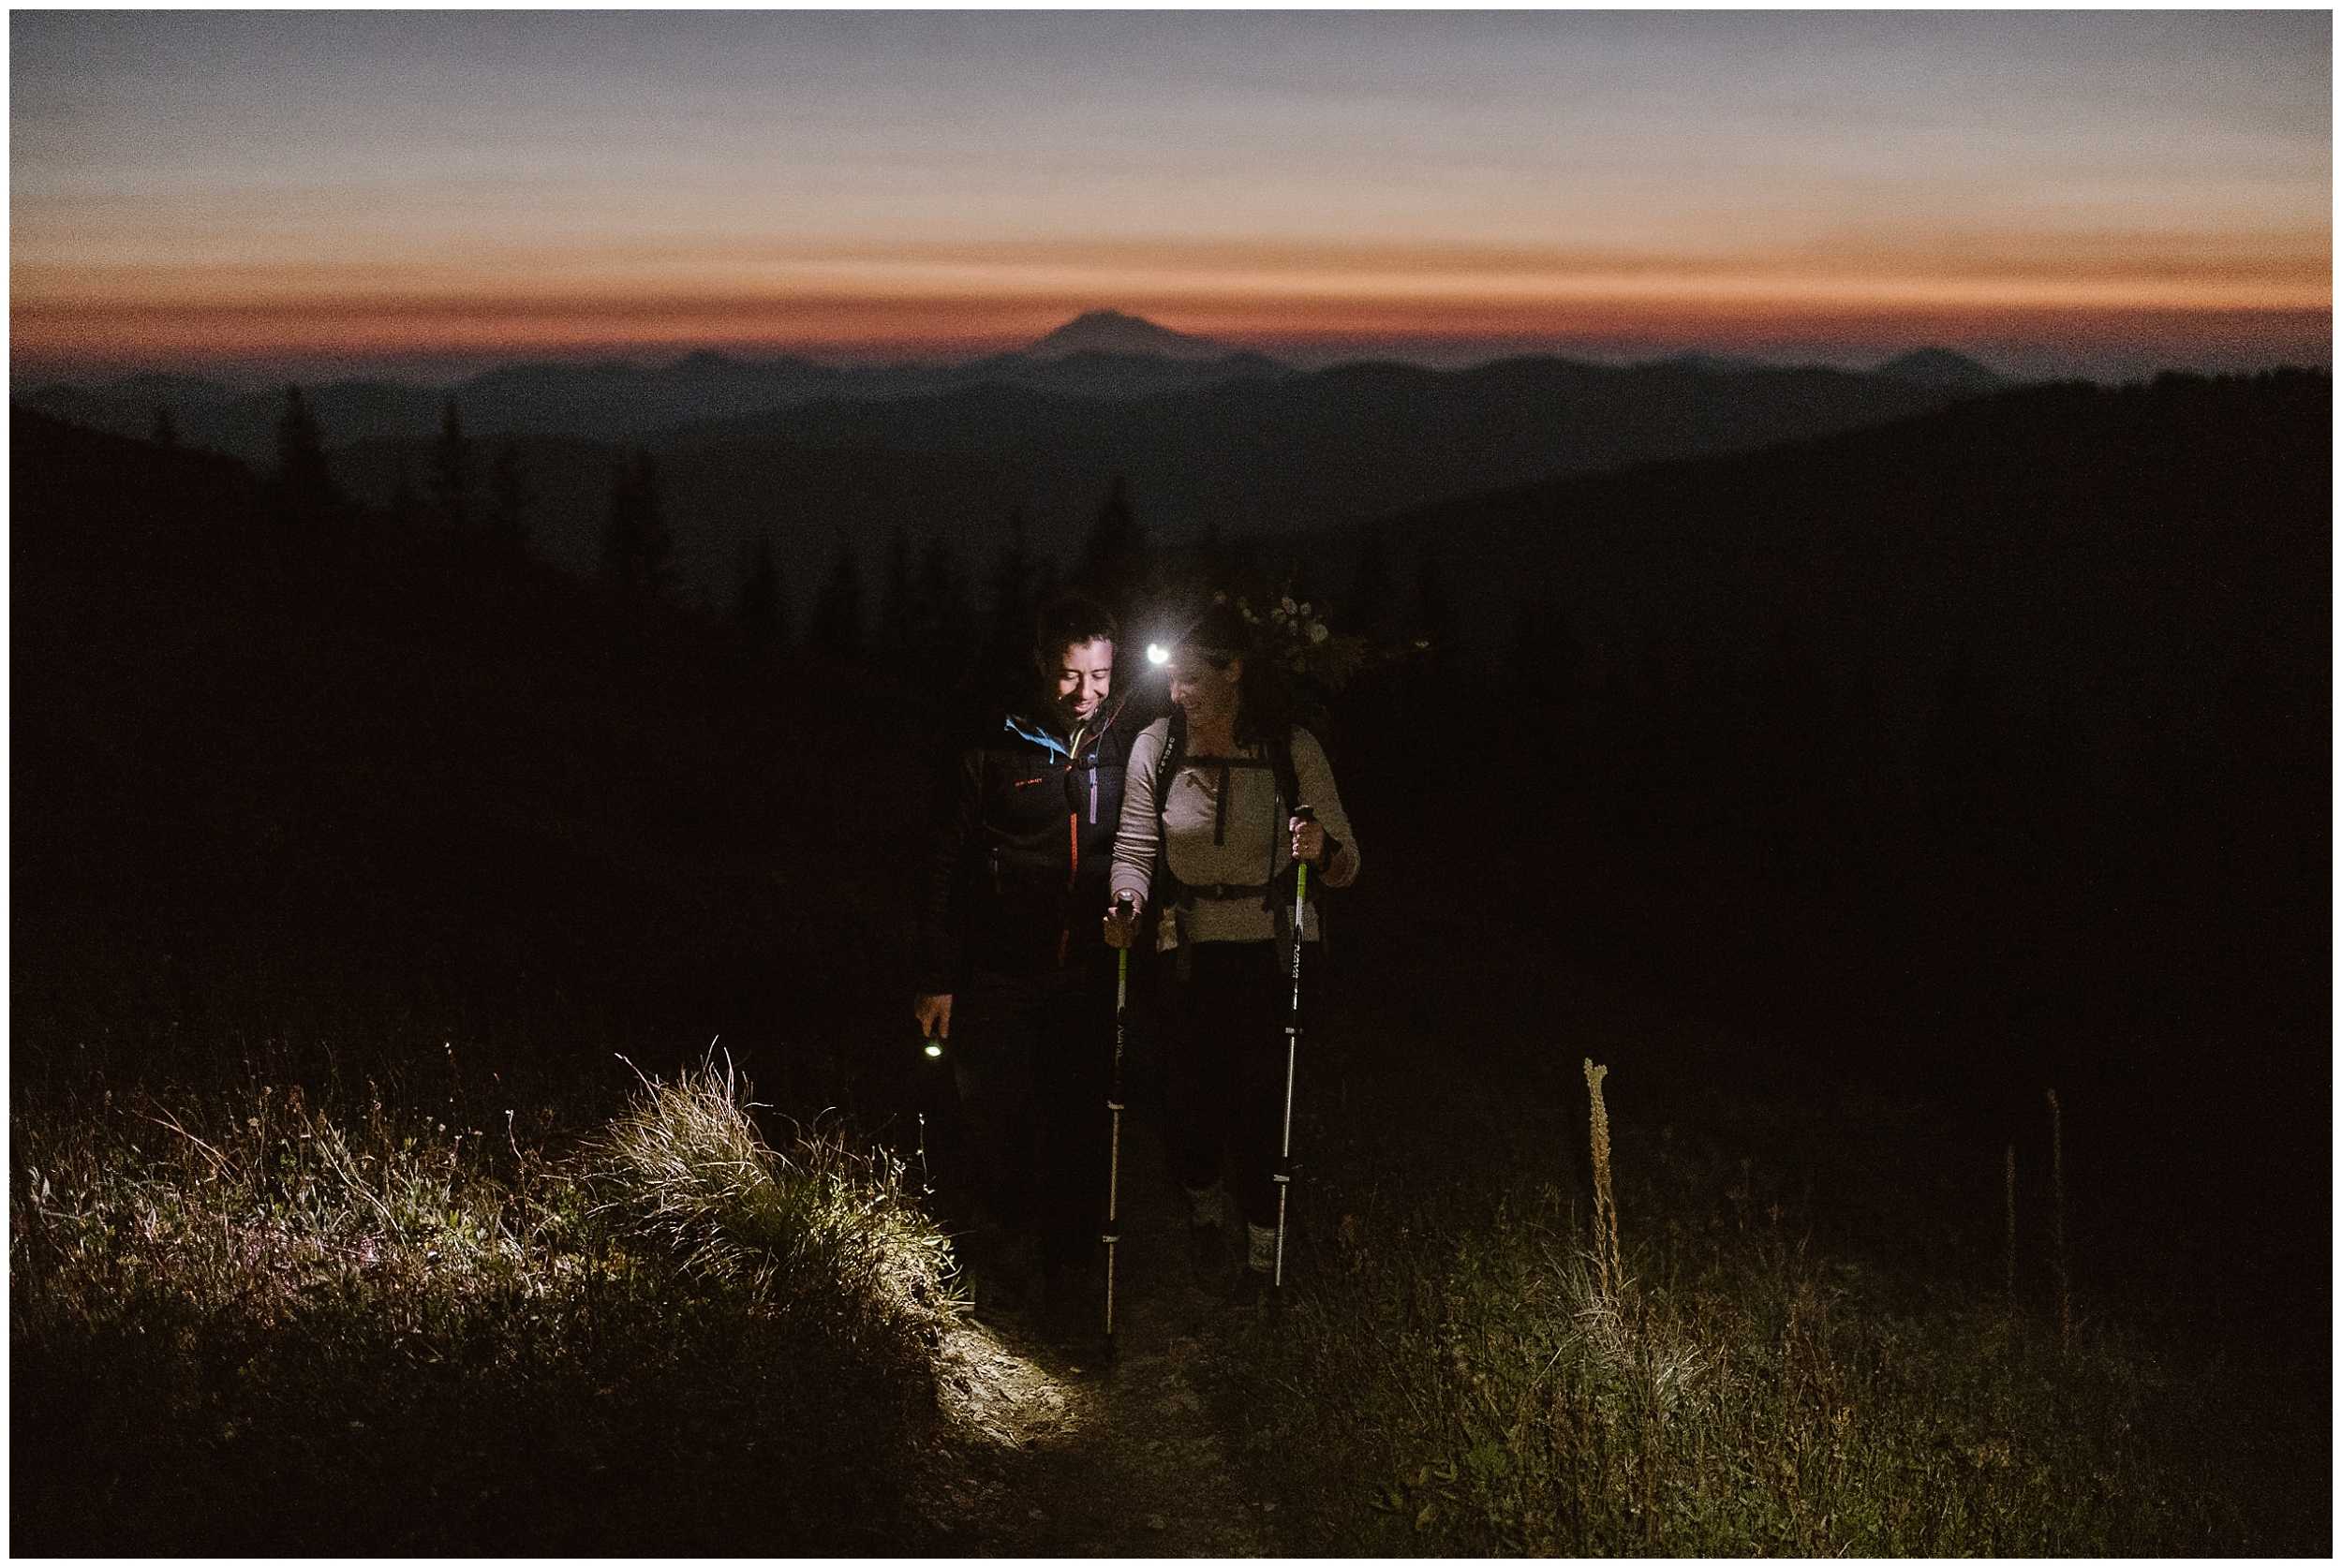 Lauryn and David begin the second part of their elopement ceremony as they hike a Washington trail in total darkness. With nothing but their headlamps to guide them, the two begin the second part of their North Cascades elopement.